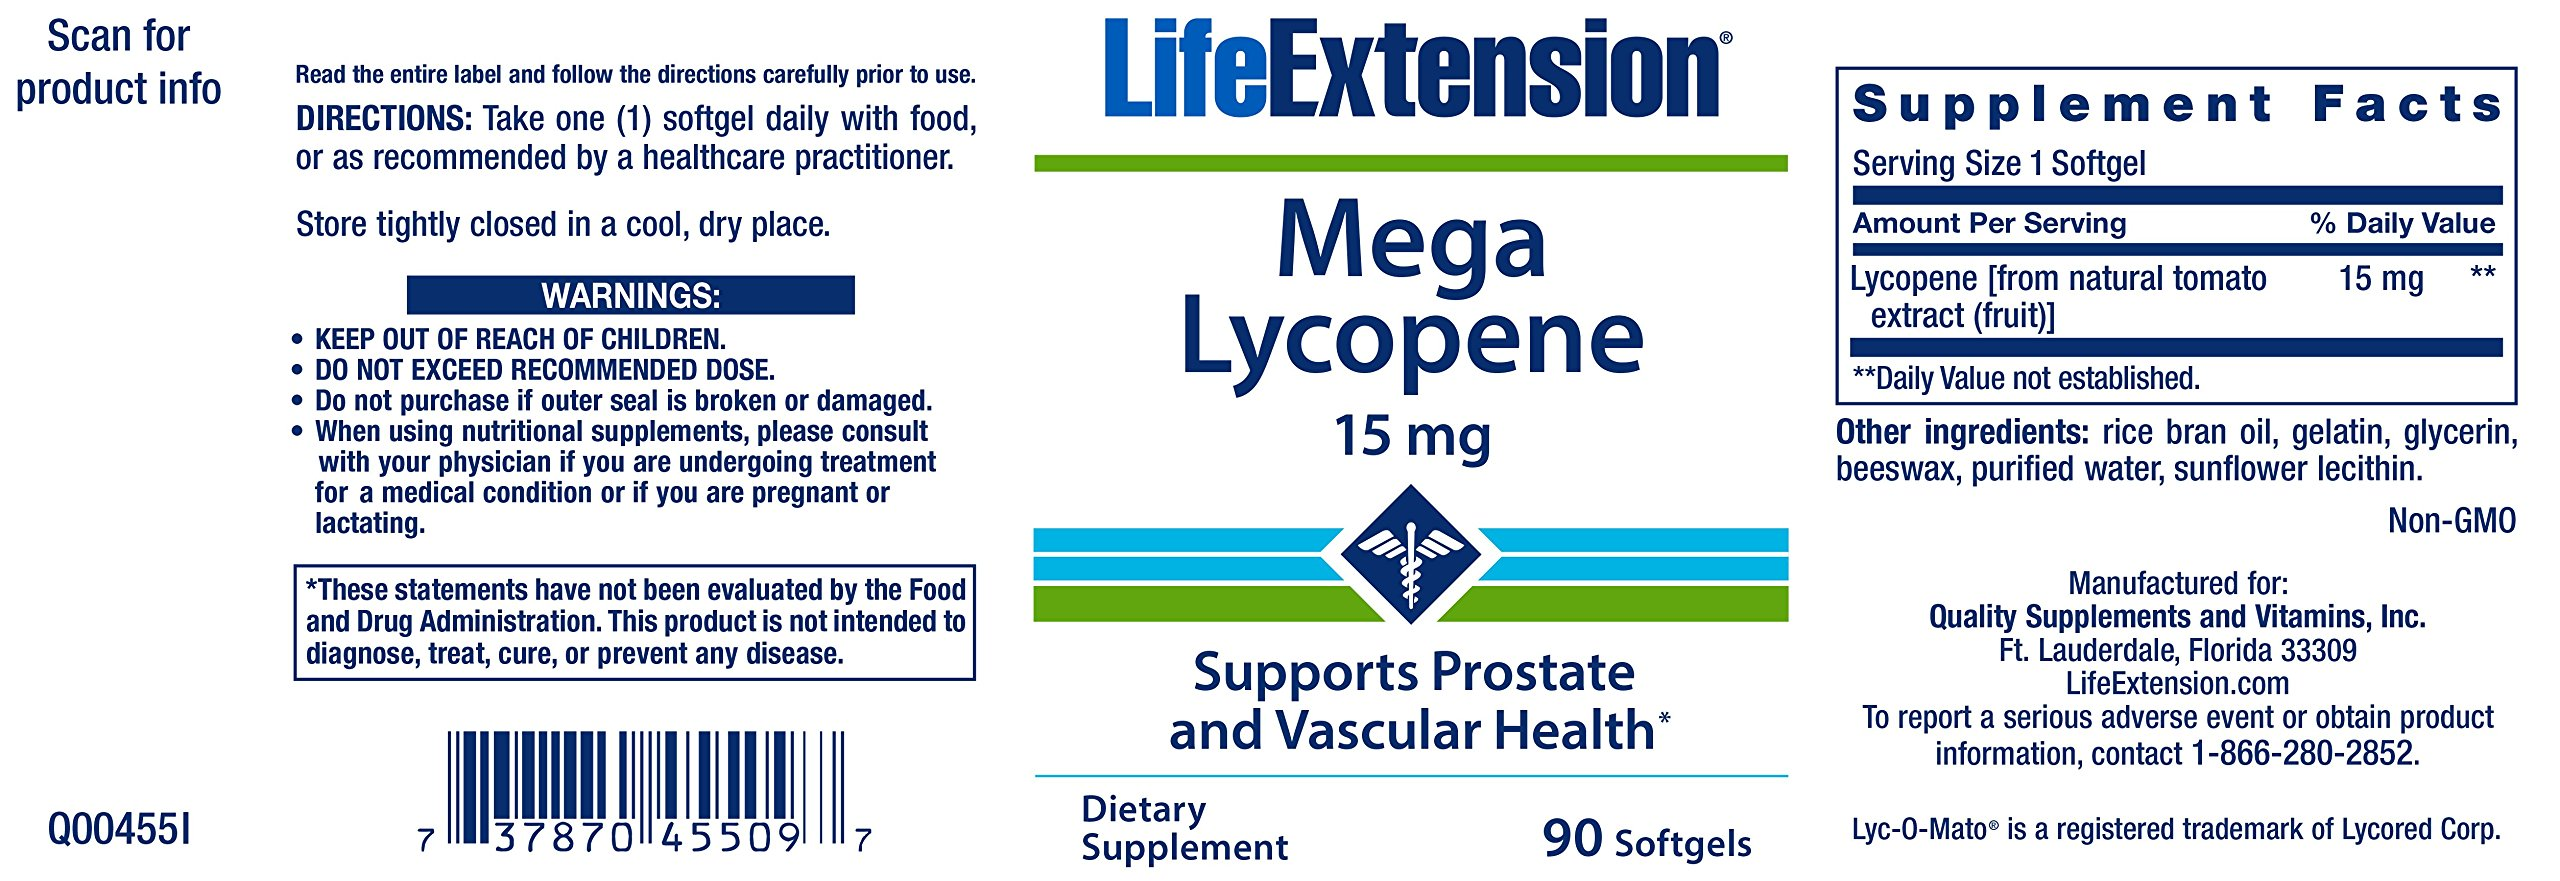 Life Extension Mega Lycopene Extract 15 Mg, 90 softgels by Life Extension